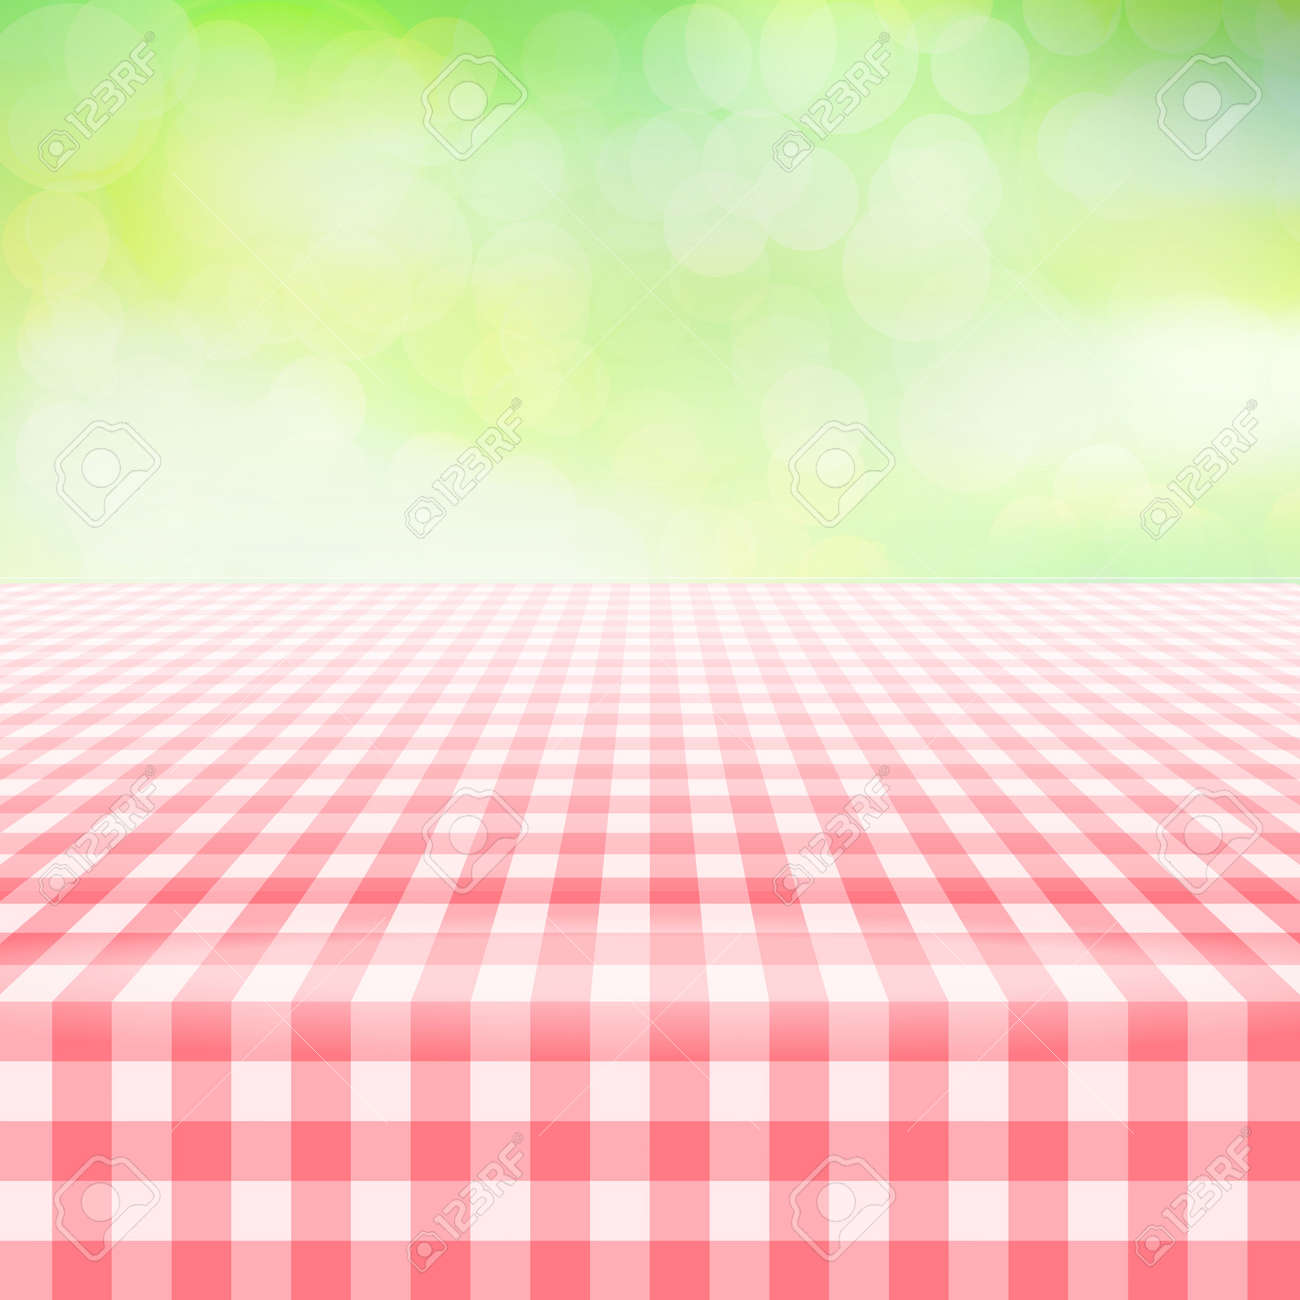 empty picnic table covered with checkered gingham tablecloth